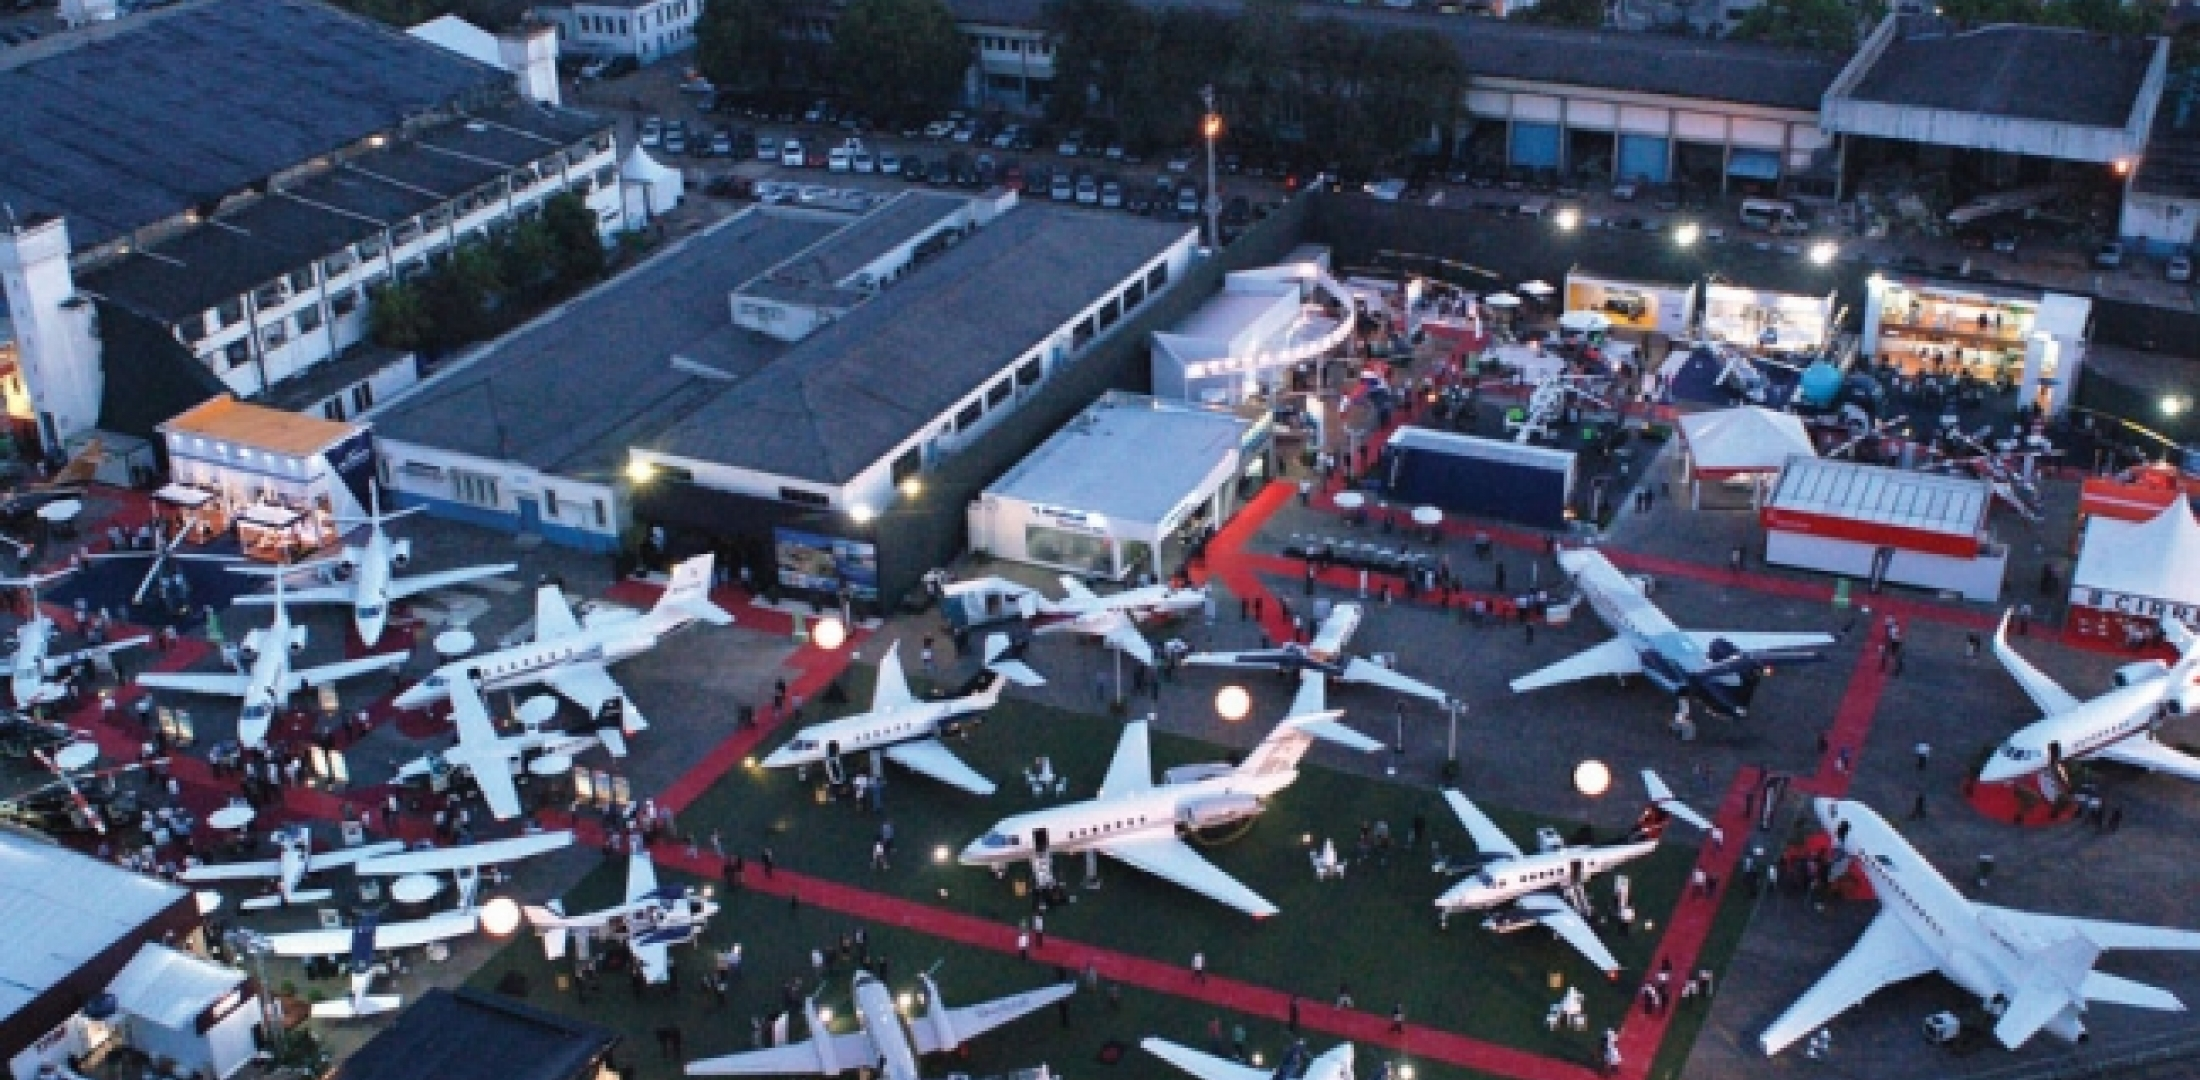 Aerial view of LABACE show